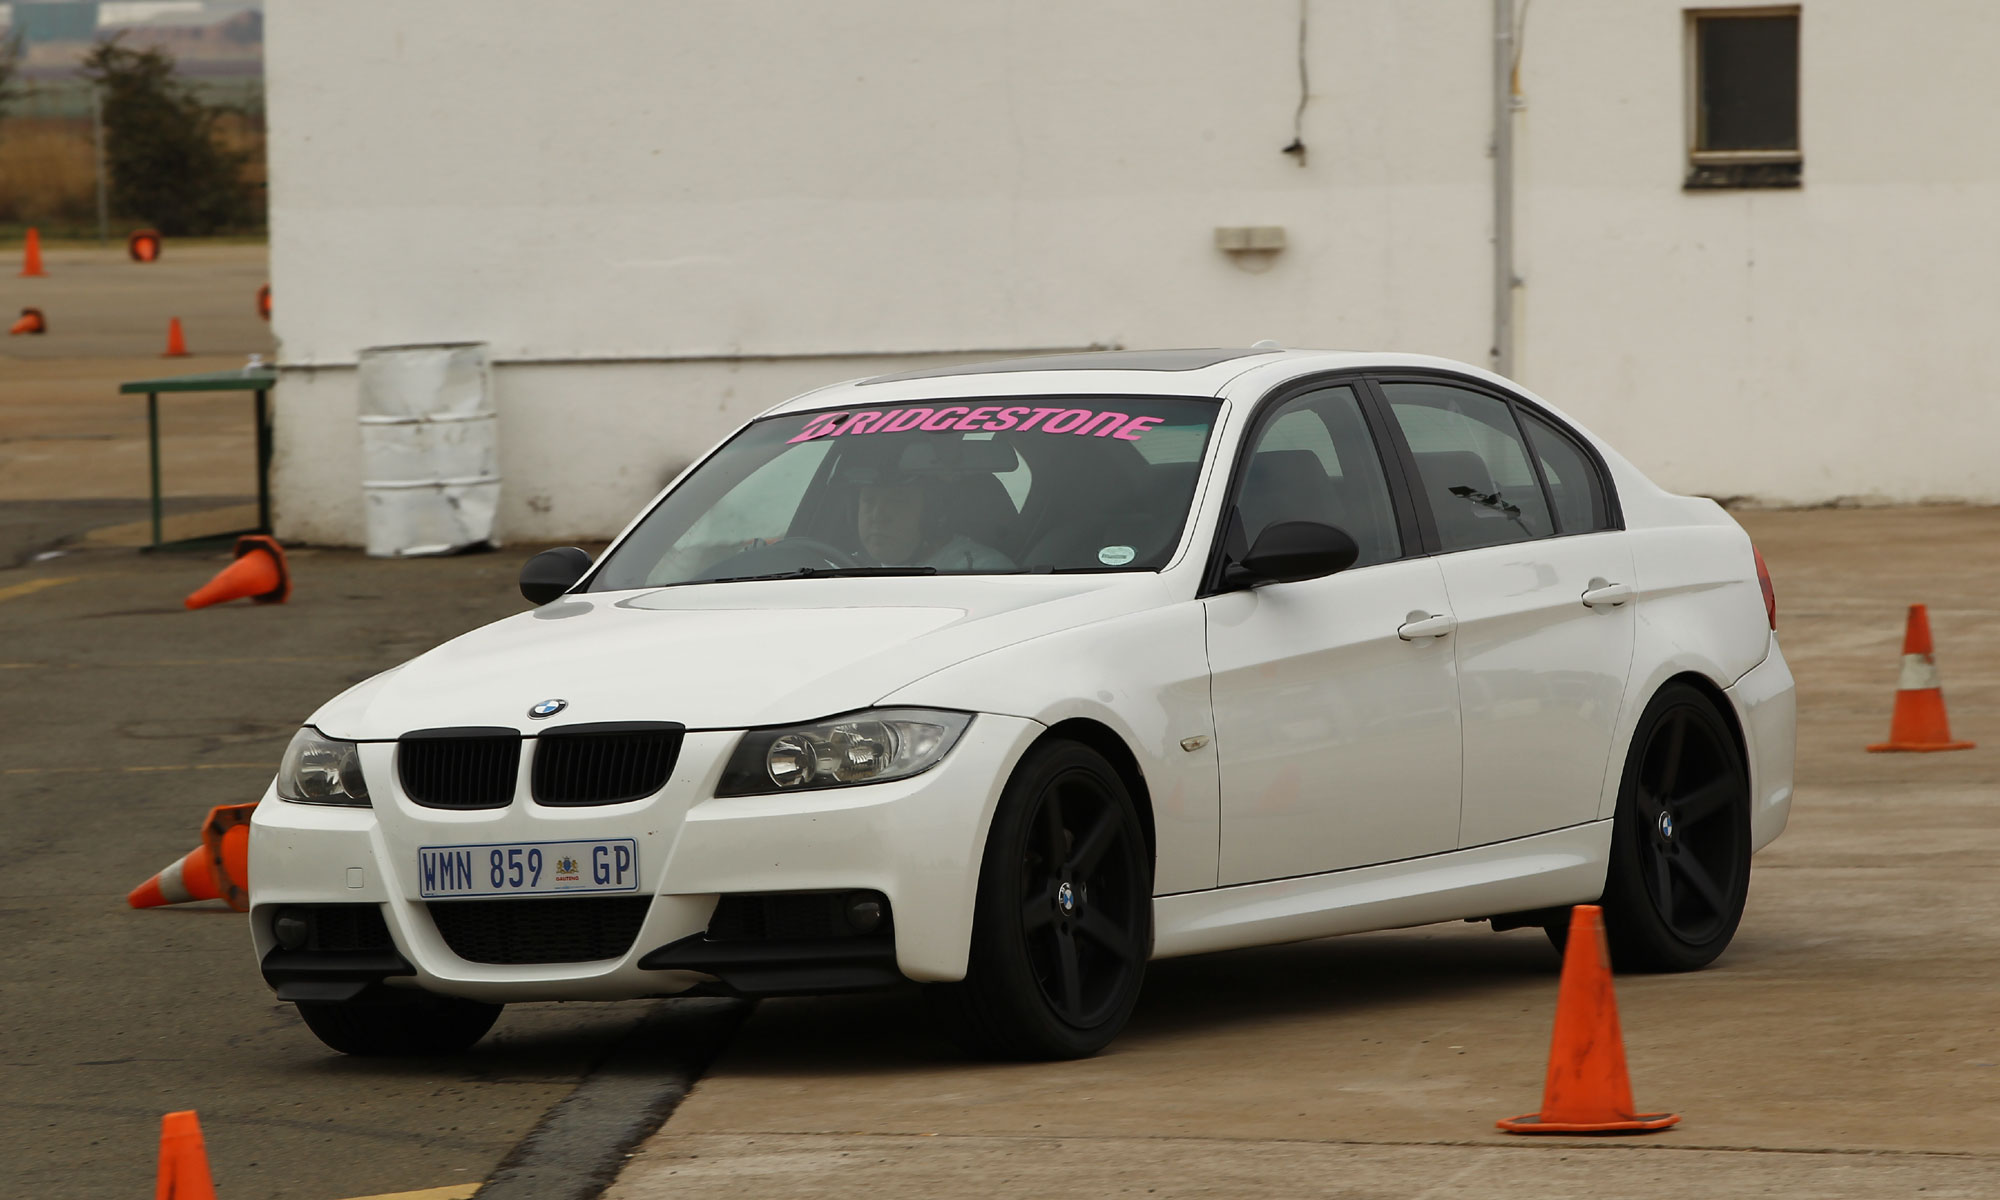 Bmw 335i Racecar Build Is A New Regular Series On Our Site